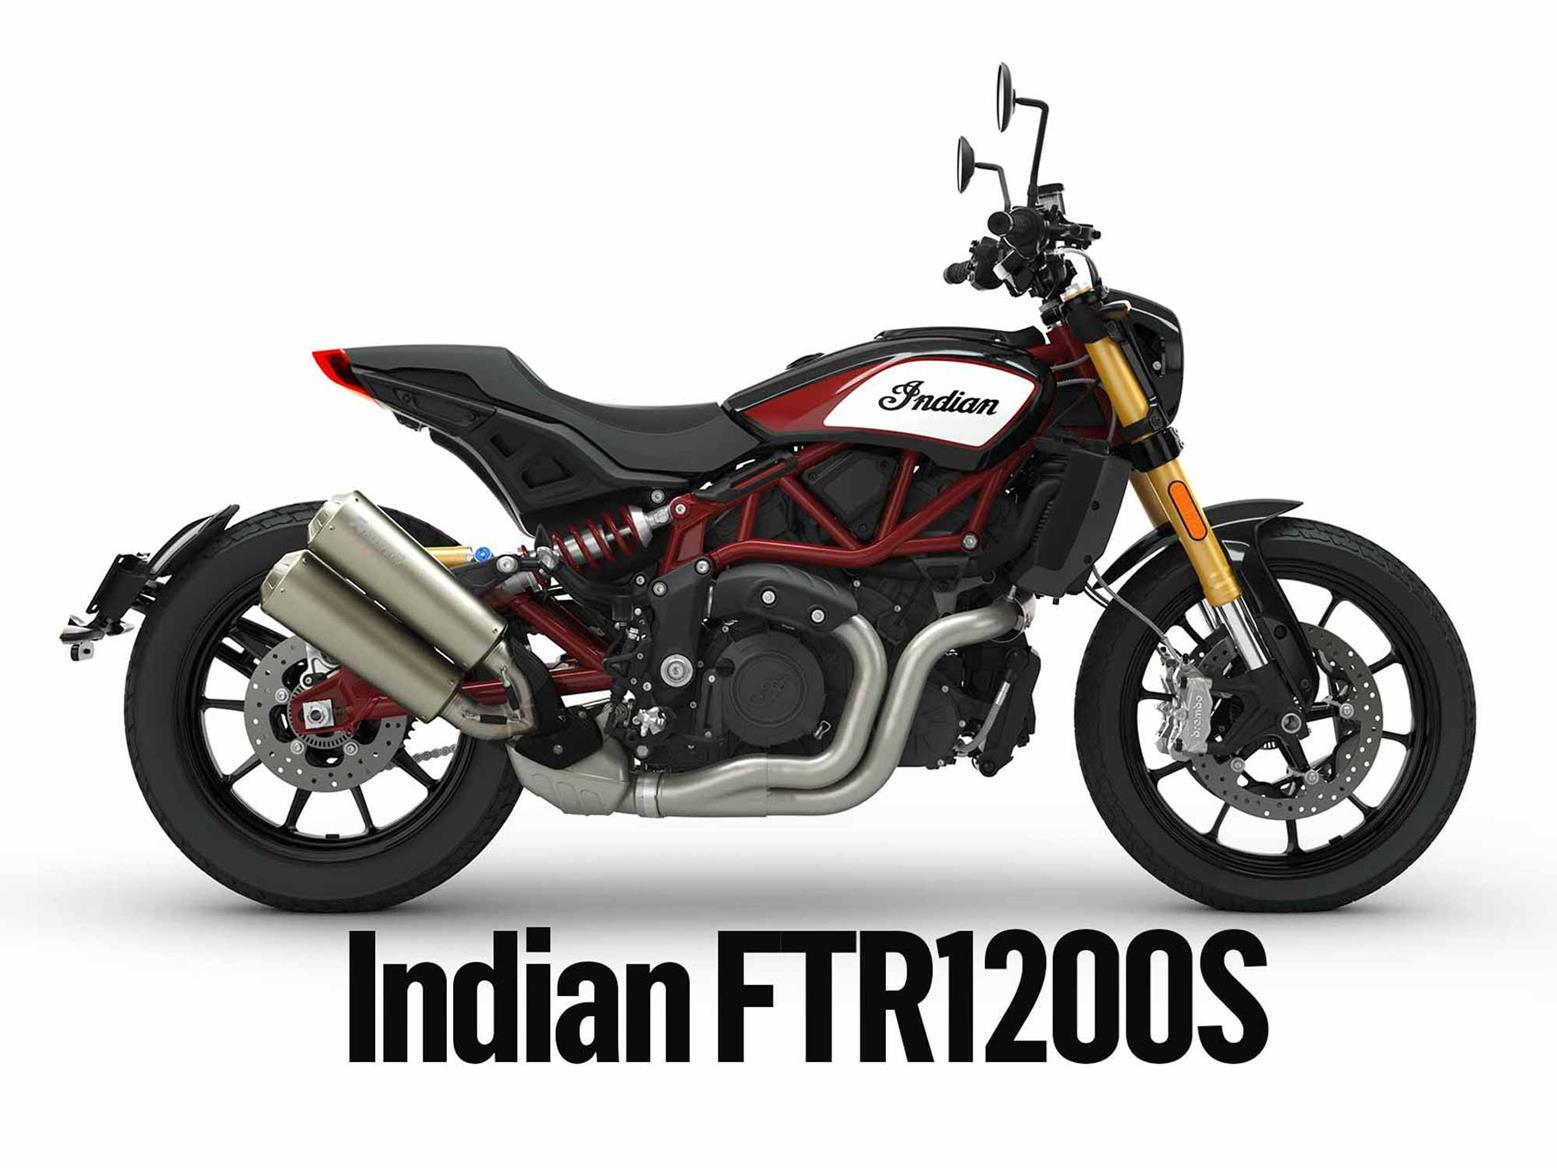 Read MCN's detailed Indian FTR1200 S long-term test review here